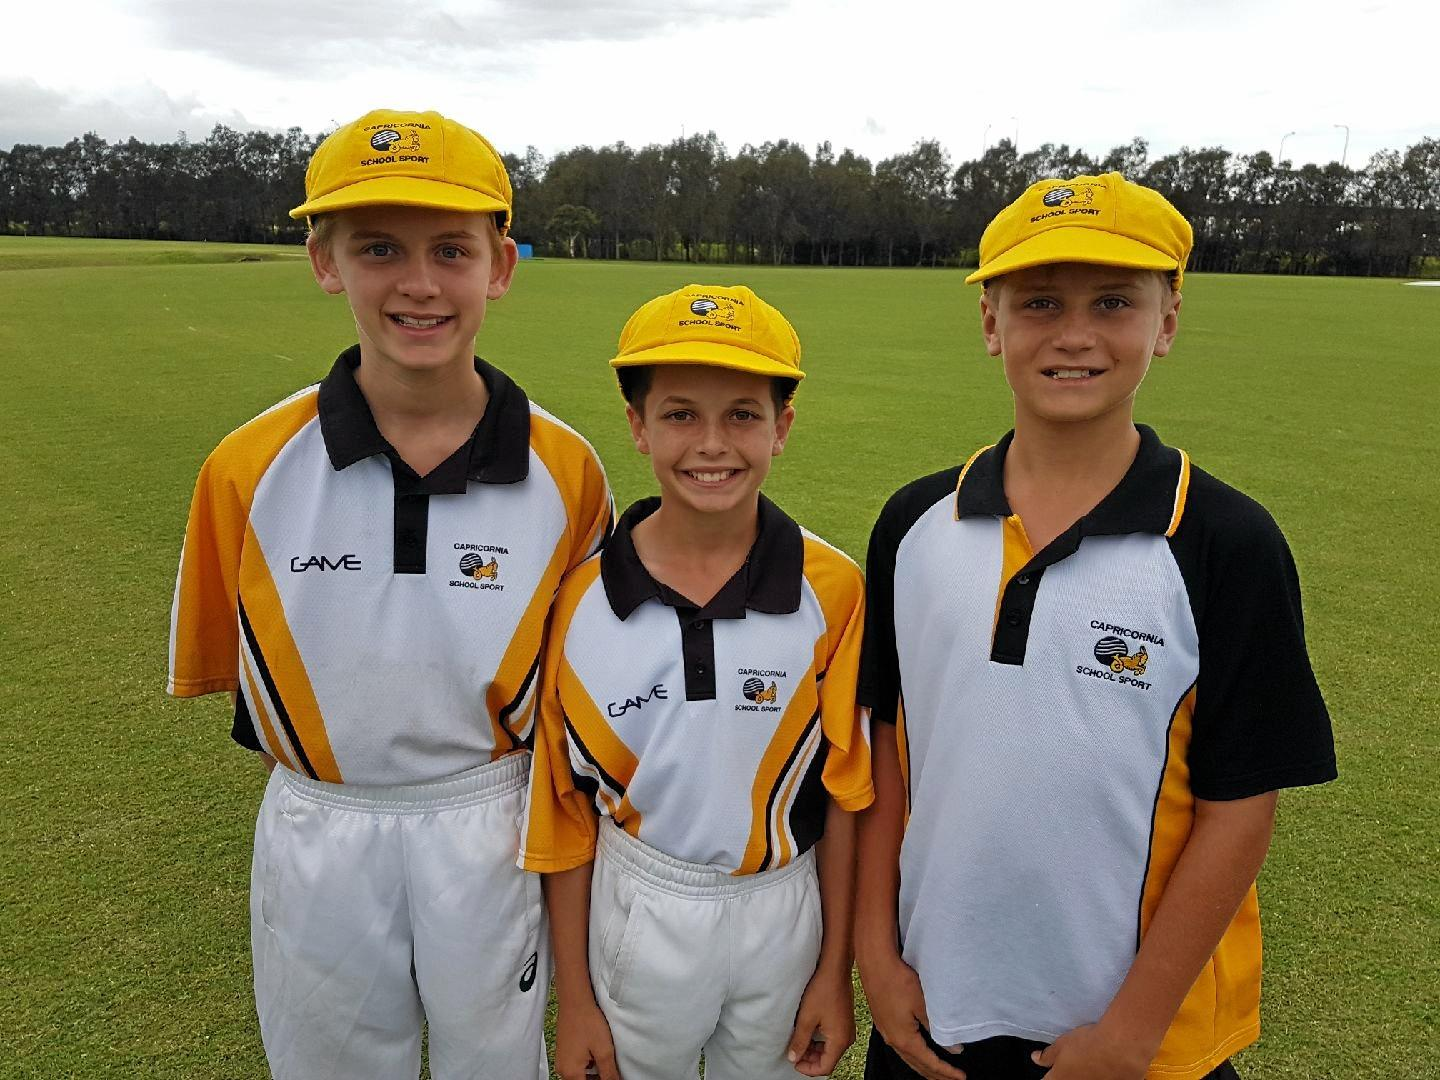 TALENTED: Gladstone players Will Raffin, Lachlan Wembridge and Kori Ramsden represented Capricornia at the Queensland Under-13 State Cricket Championships.